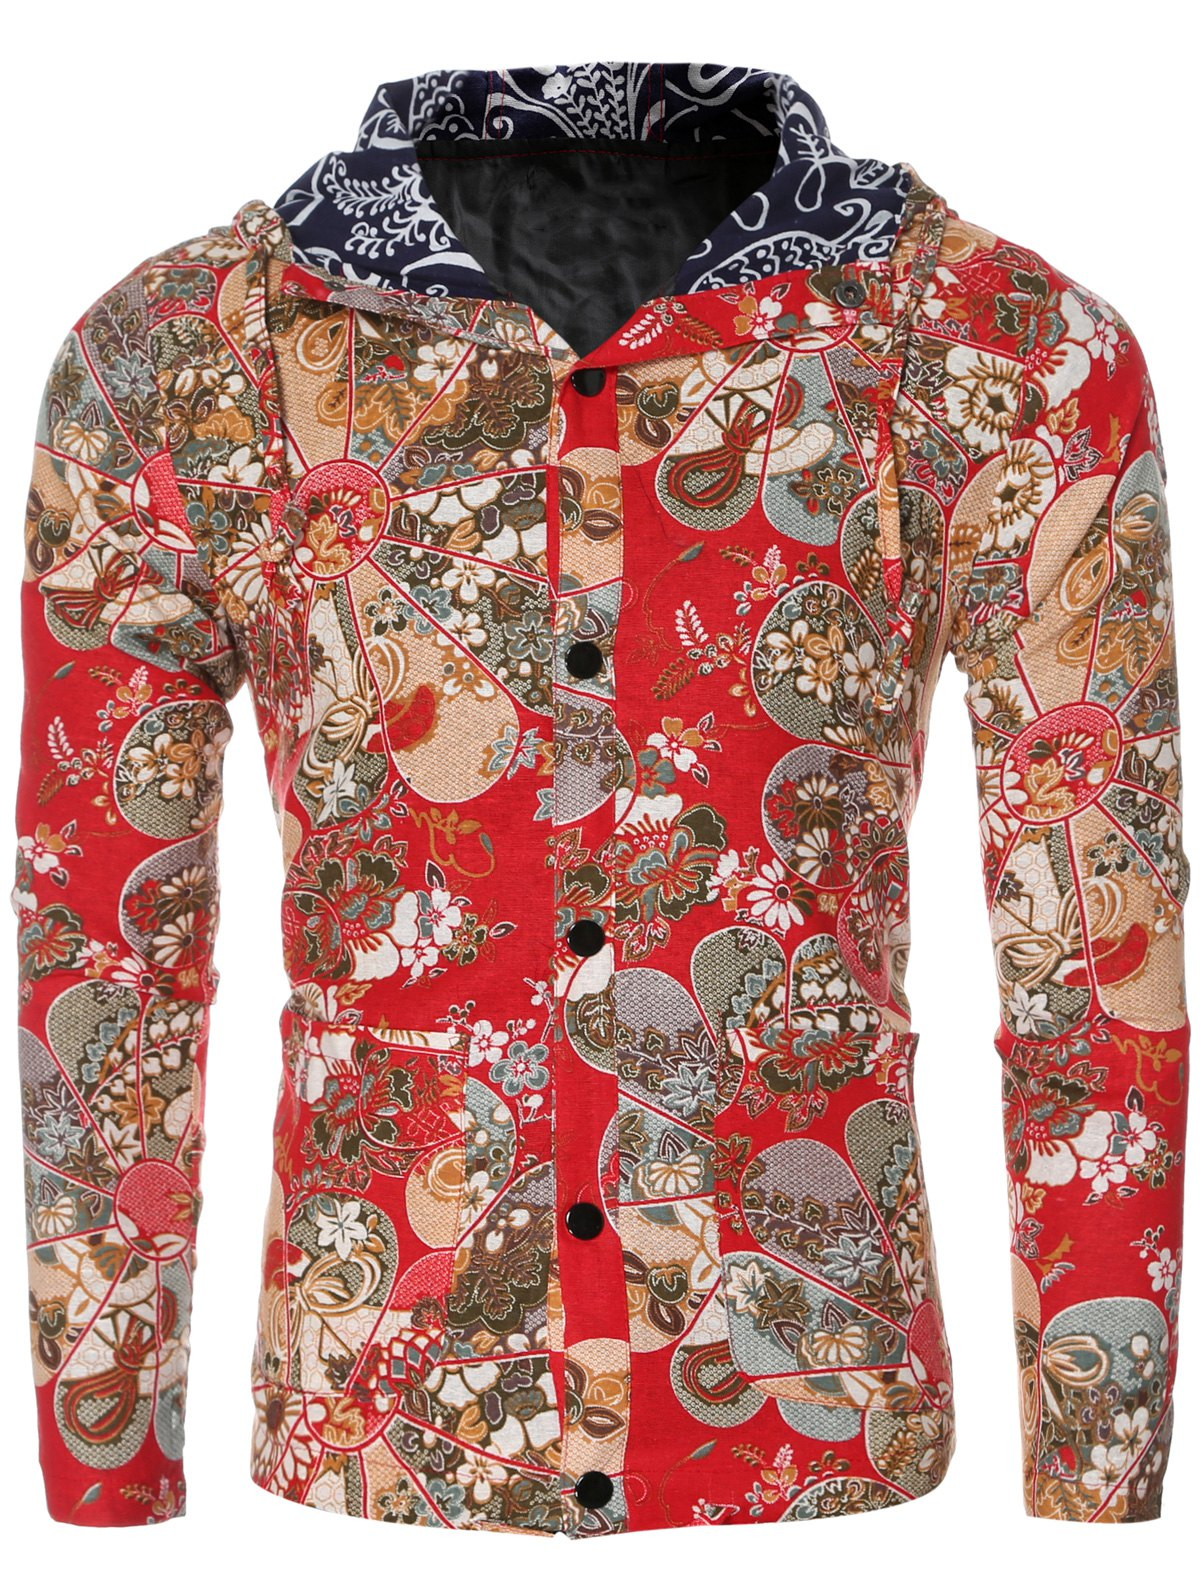 Trendy Ethnic Flower Print Hooded Floral Lining Design Long Sleeve Shirt For Men